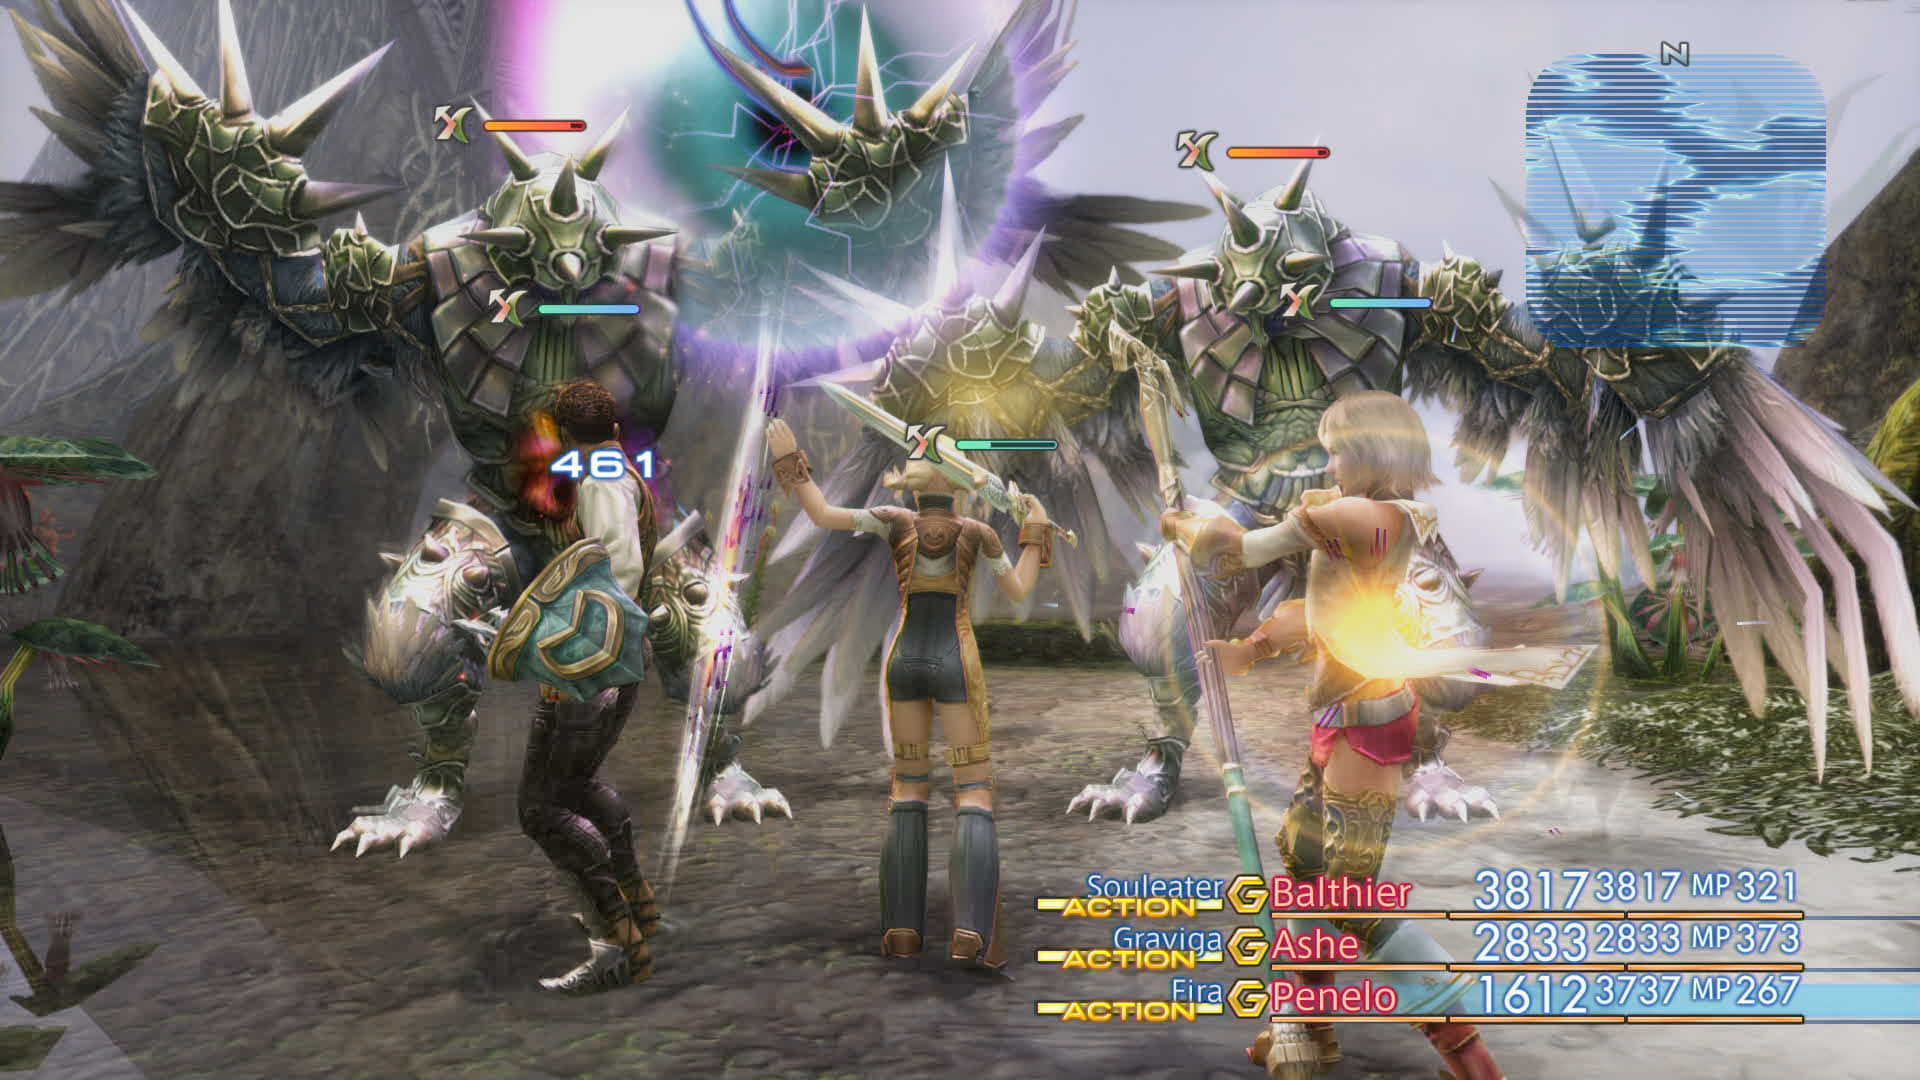 Final Fantasy Xii The Zodiac Age Trophy Guide And List Rpg Site